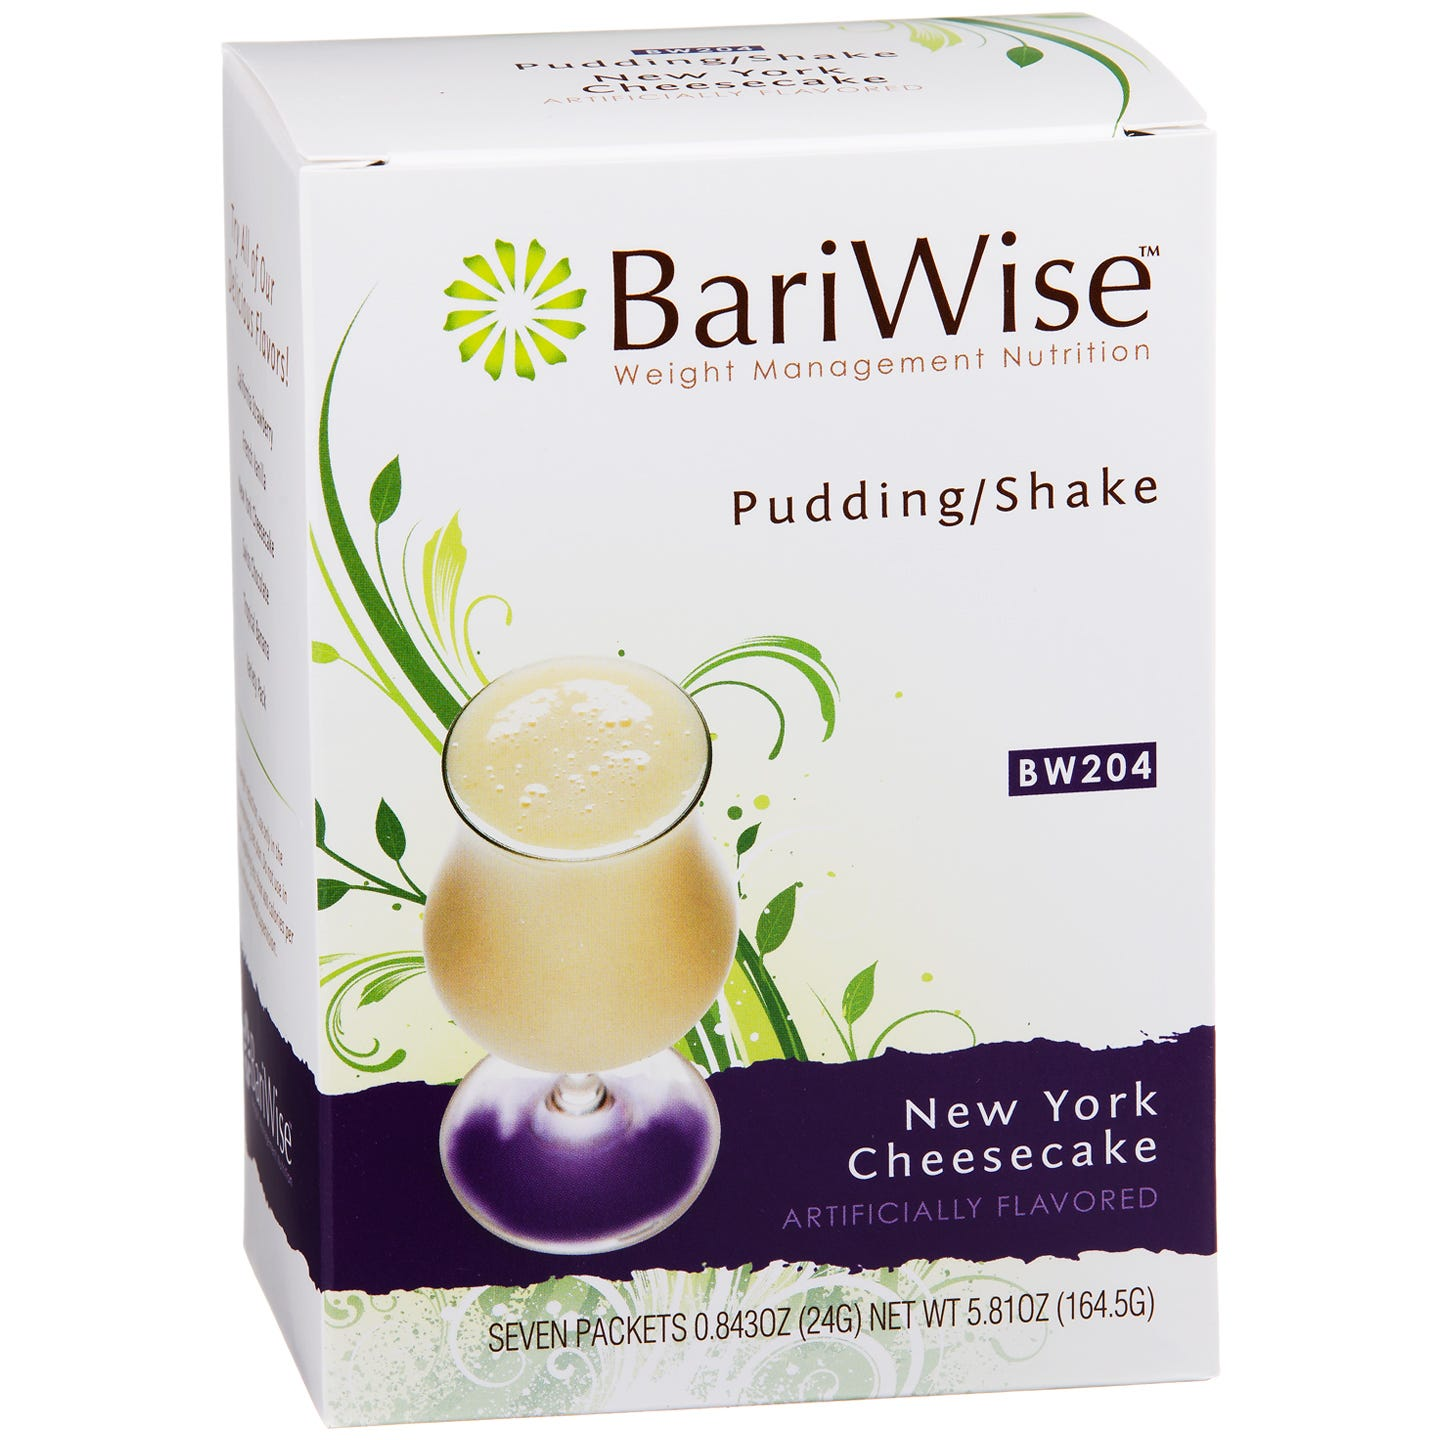 Protein Diet Pudding/Shake New York Cheesecake (7 Ct) - BariWise